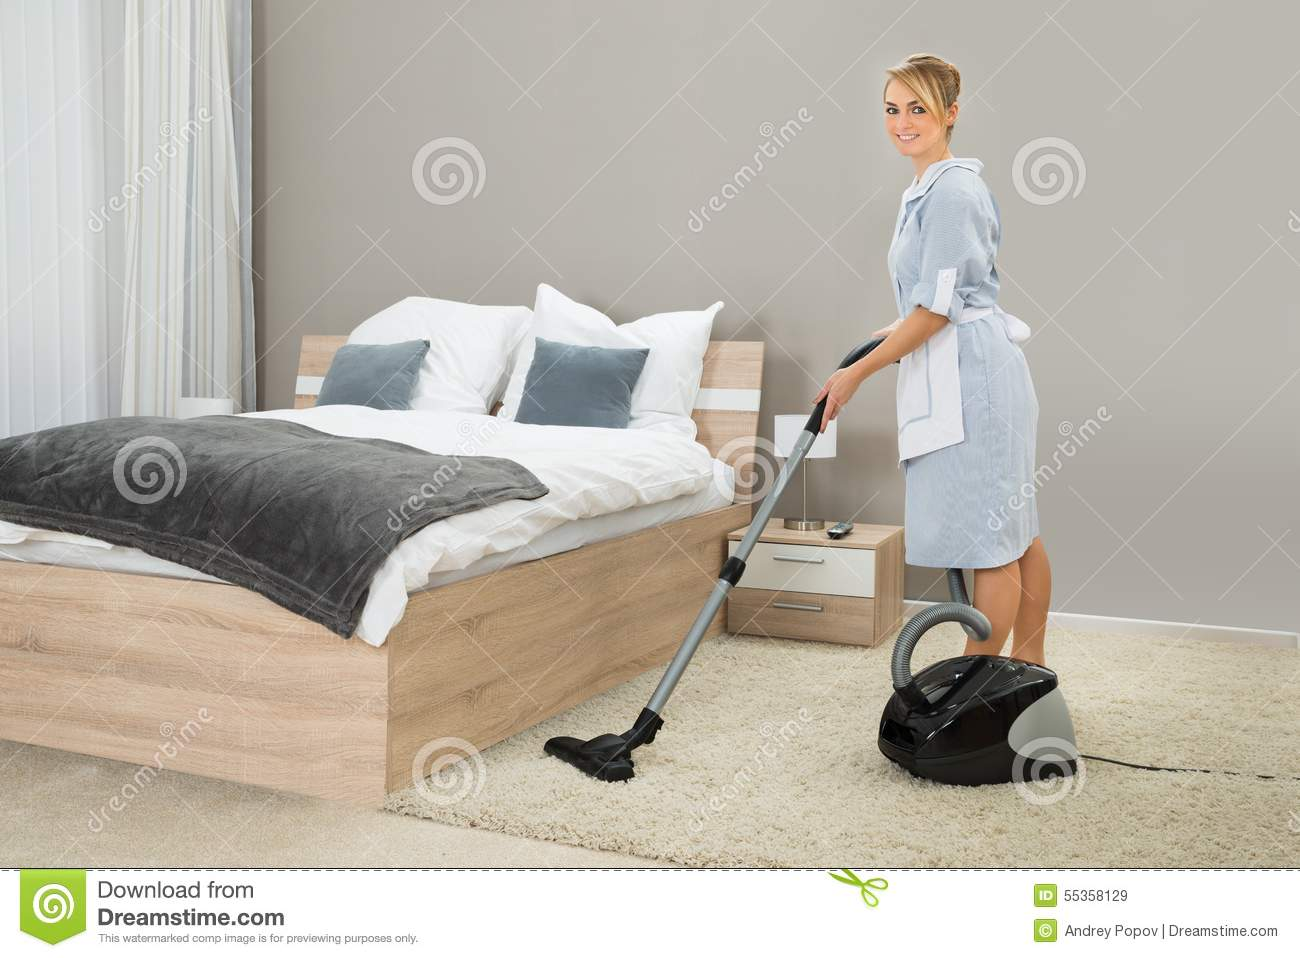 Housekeeper cleaning with vacuum cleaner